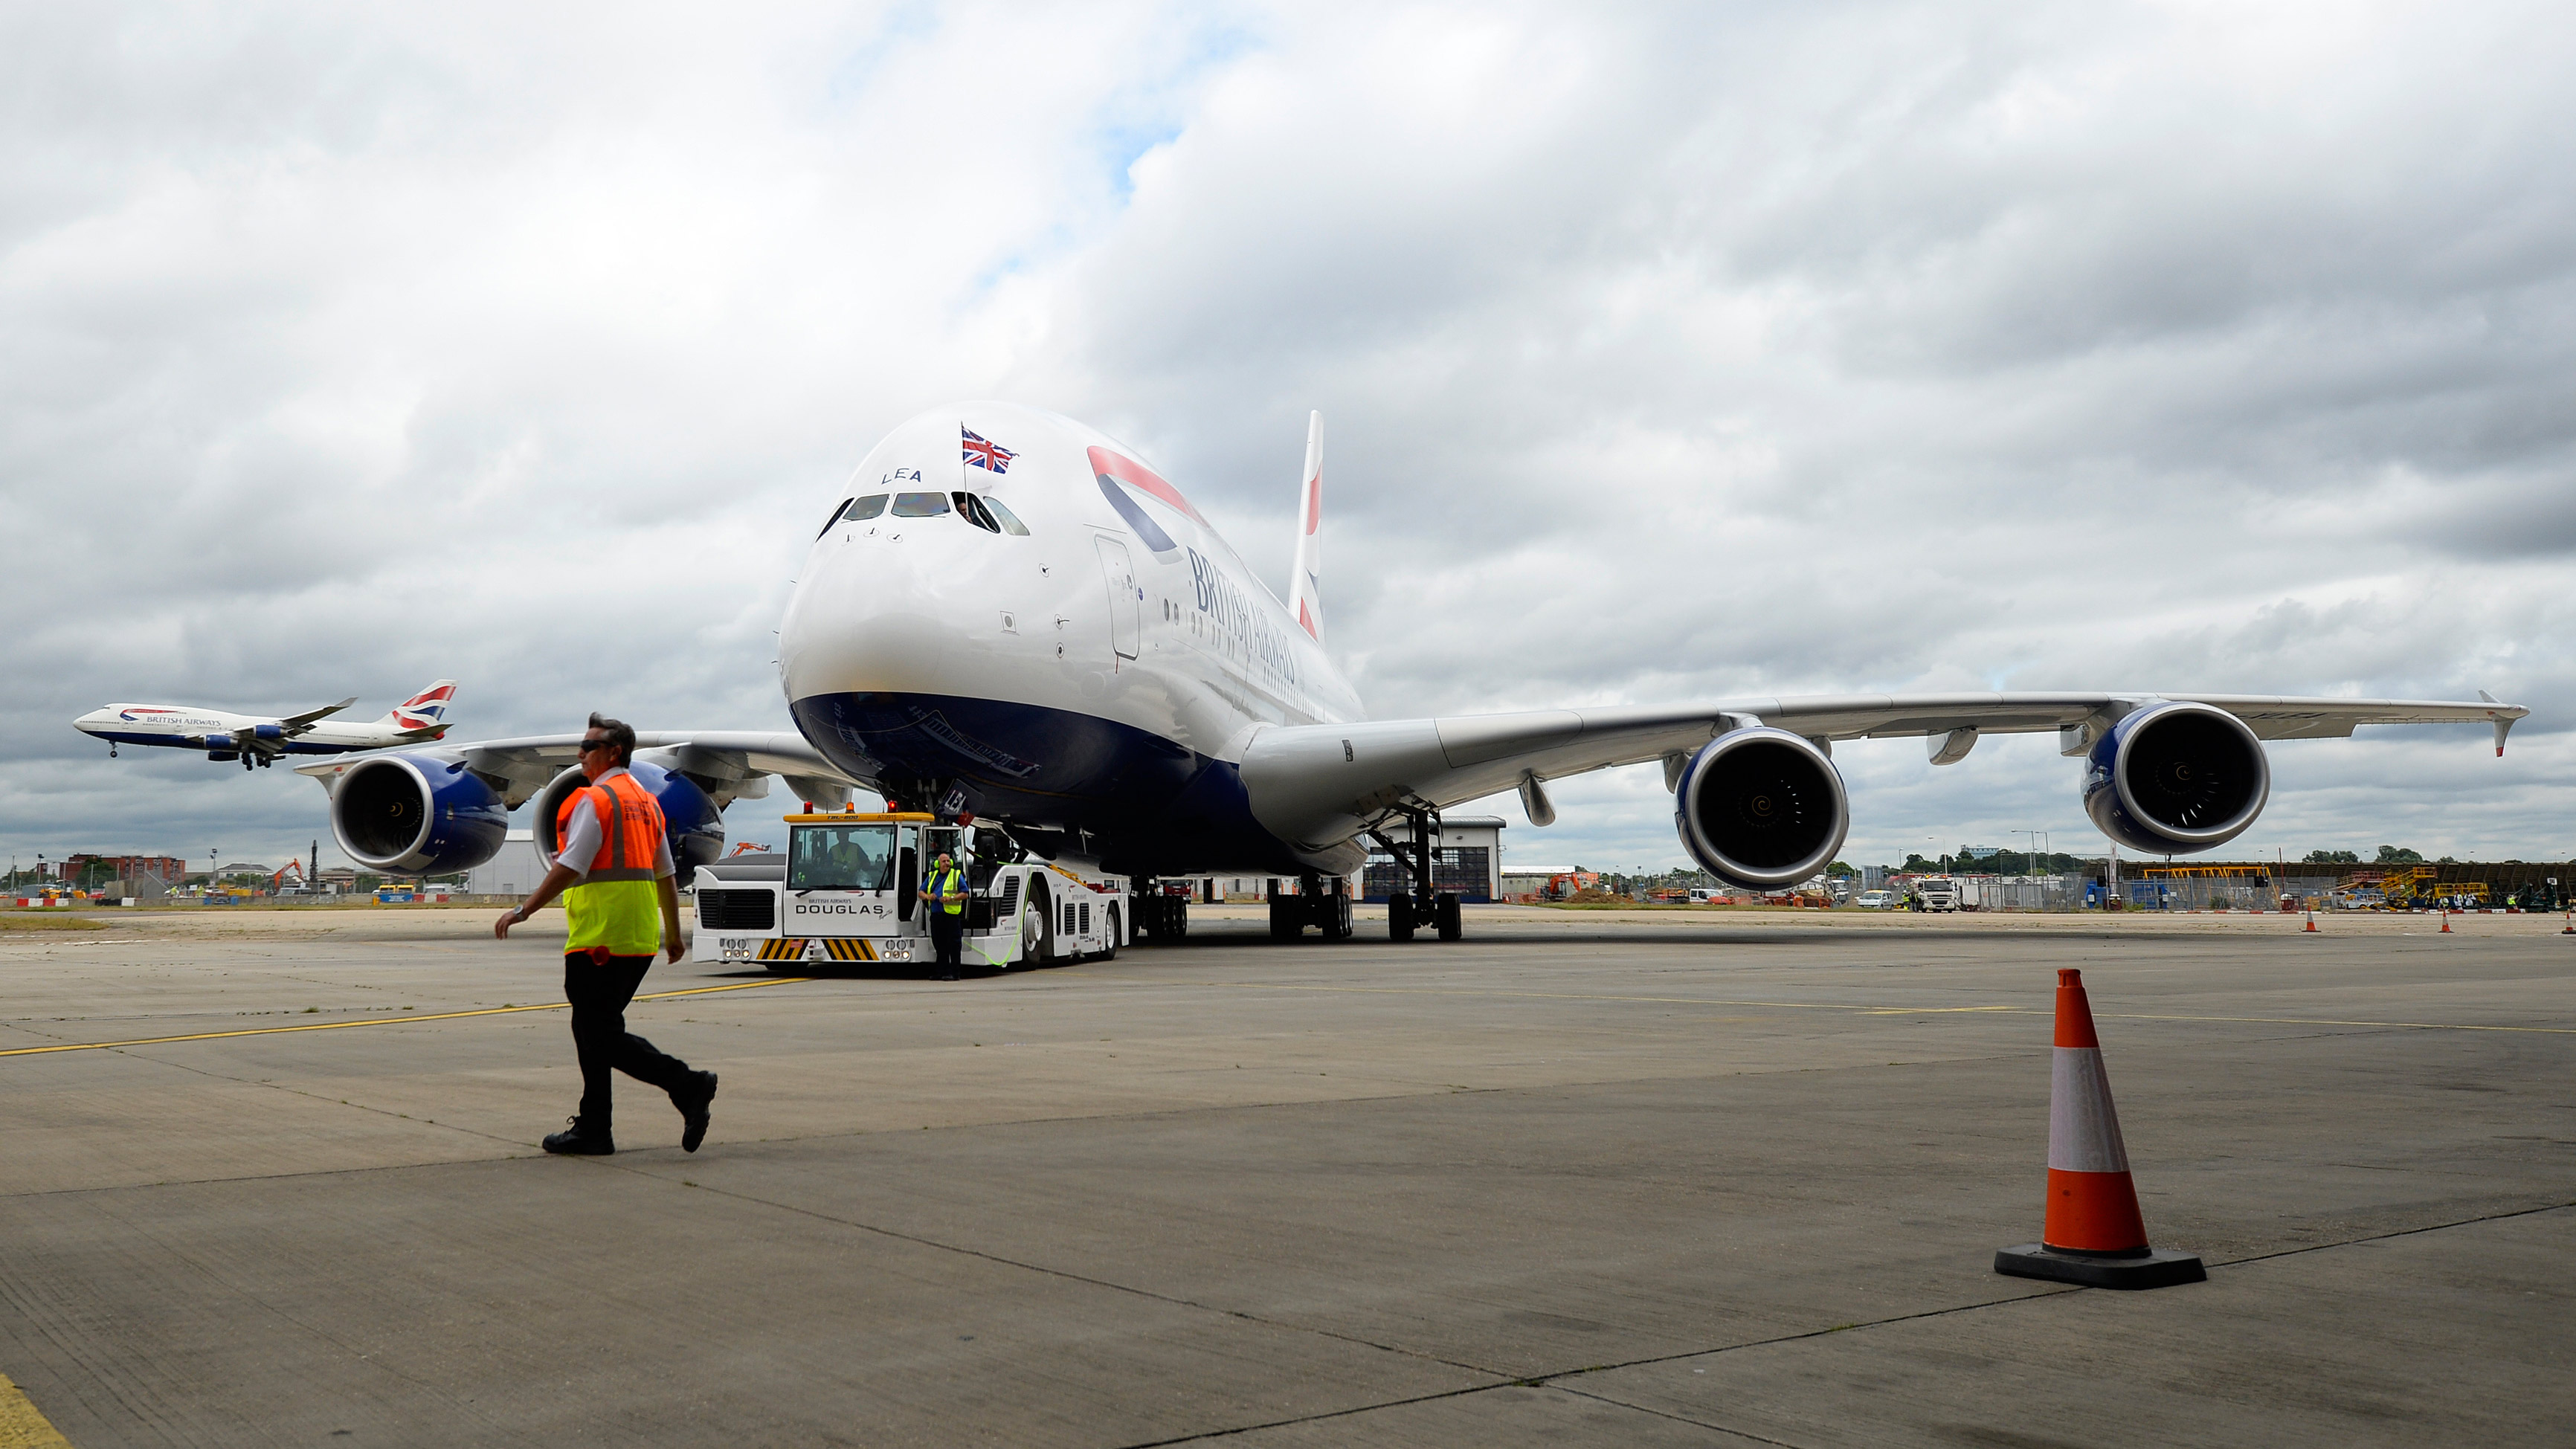 British Airways' new Airbus A380 is towed to a hanger after landing at Heathrow airport in London July 4, 2013. British Airways received its first Airbus A380 jet at Heathrow airport on Thursday, marking the start of modernising its aging fleet with new, more fuel-efficient planes able to better compete with fast-growing rivals.